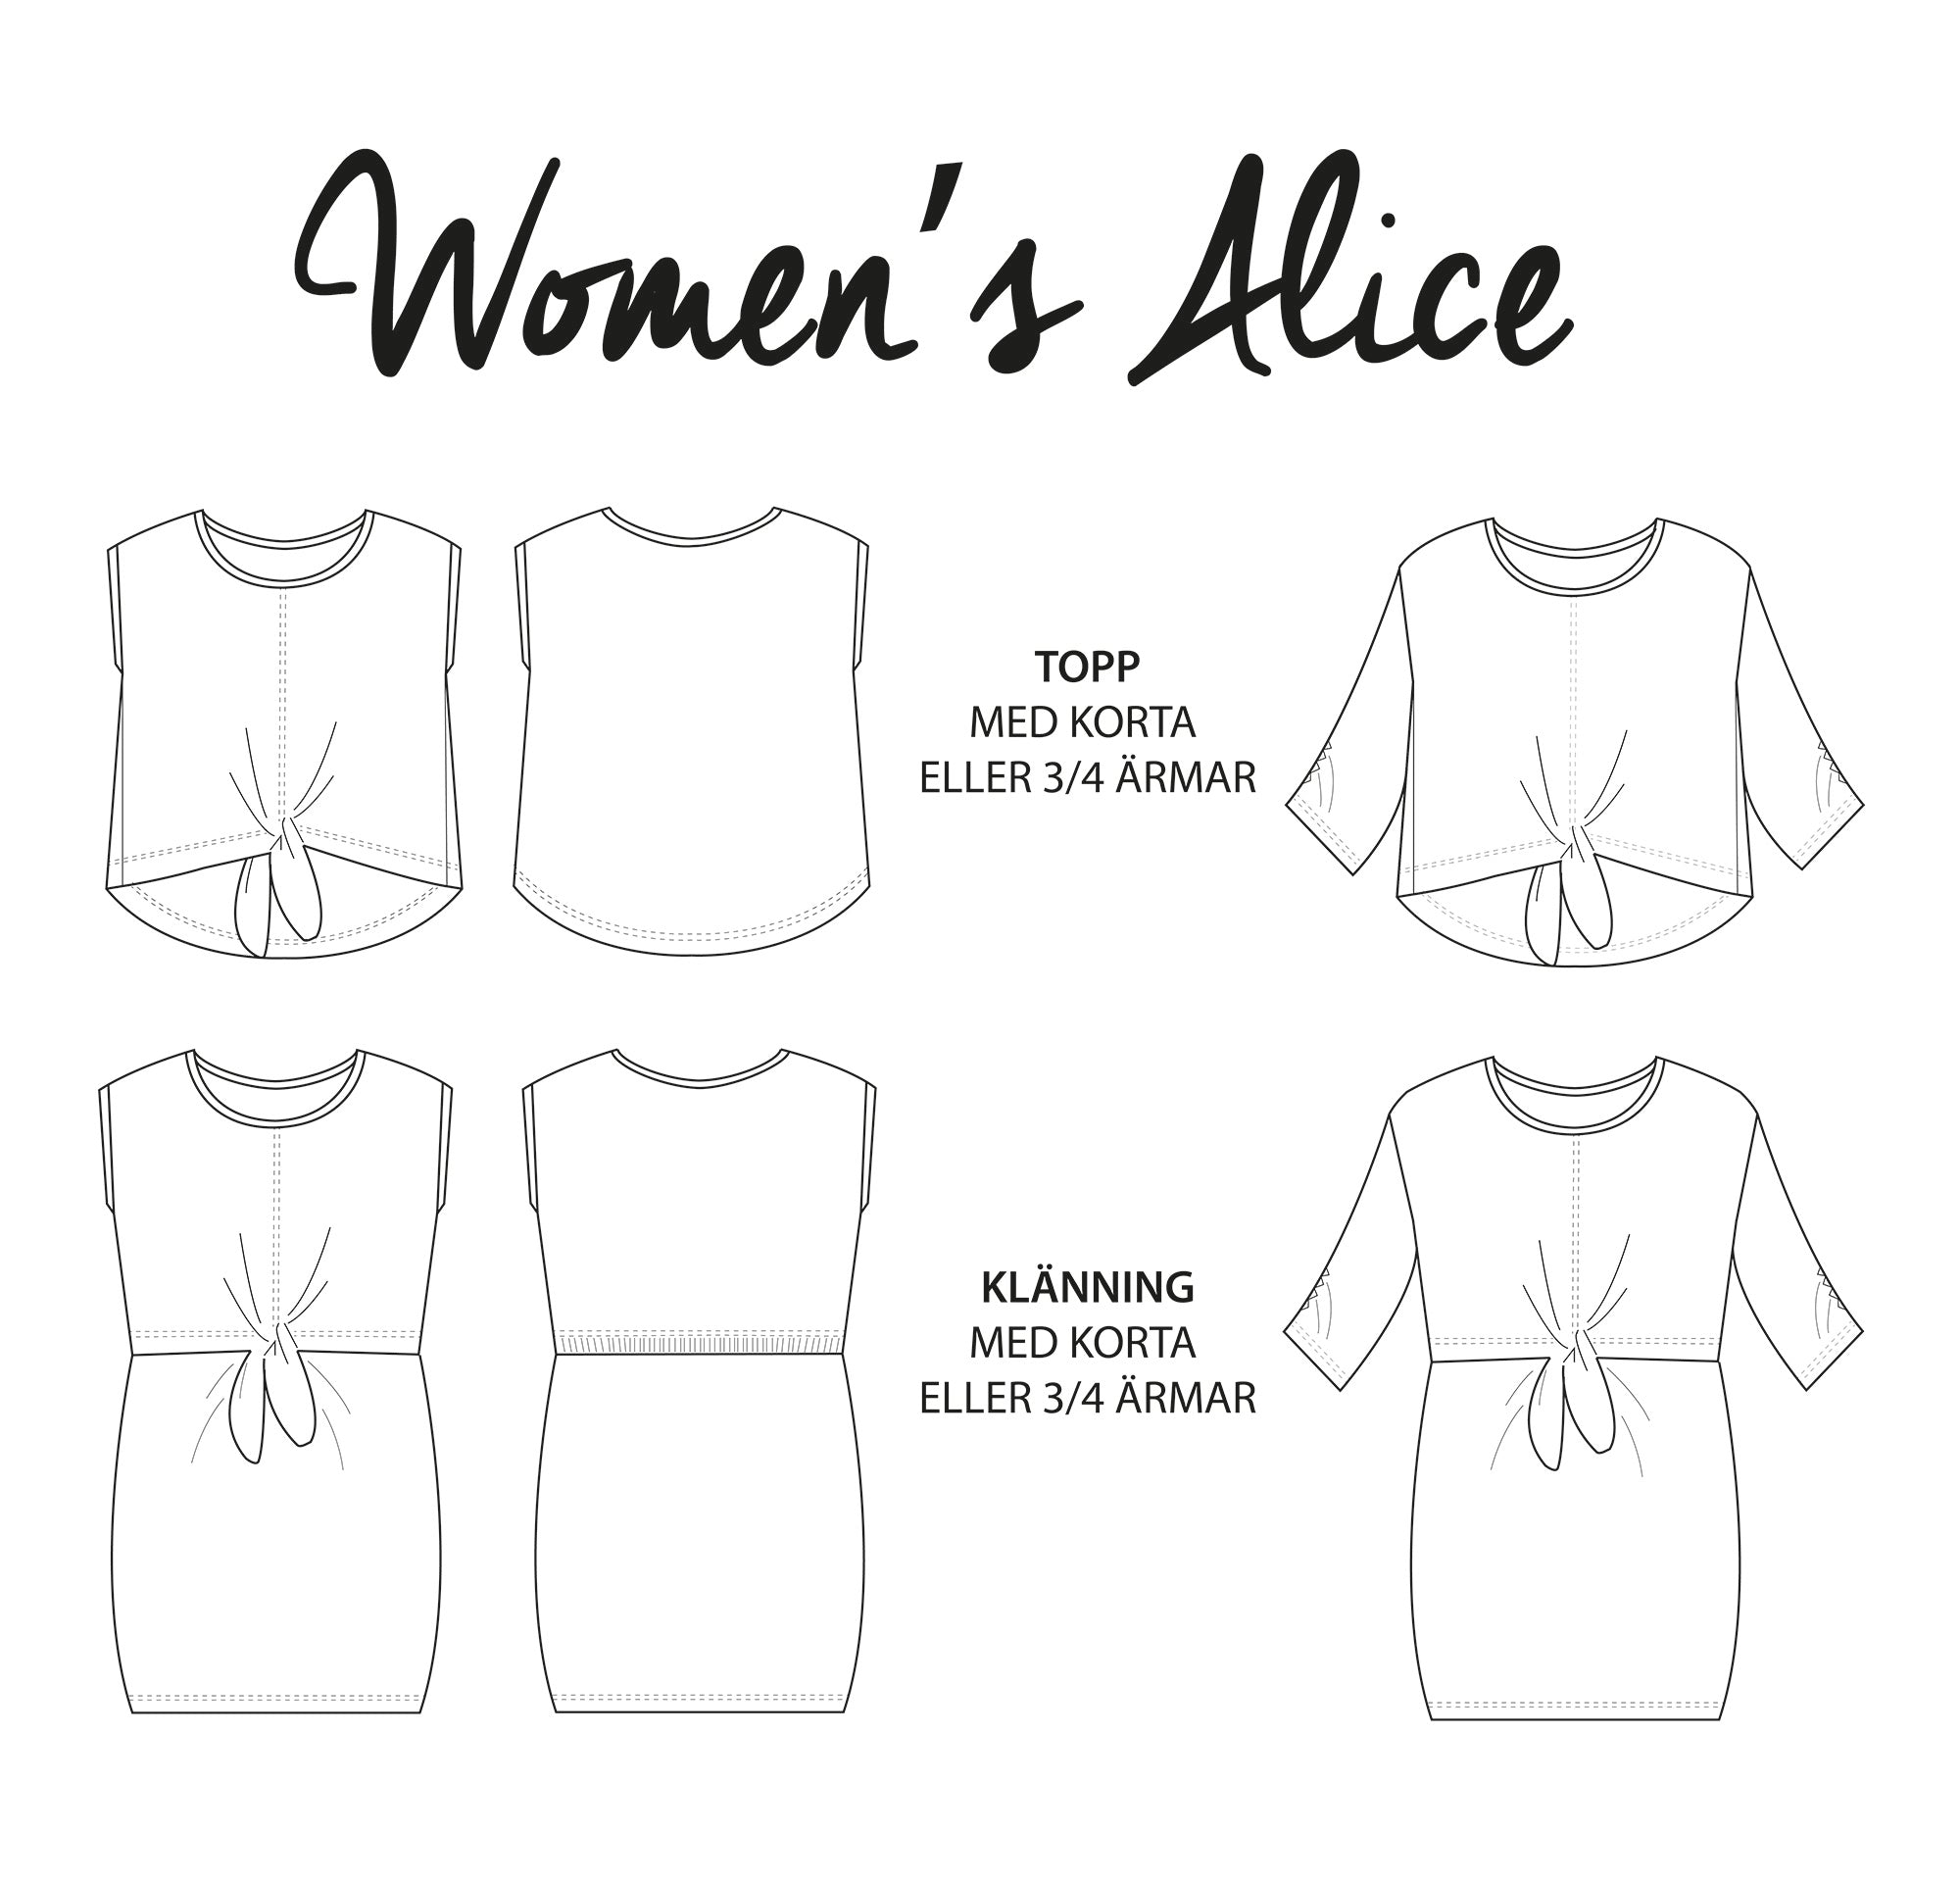 Women's Alice top & dress - printed (English)